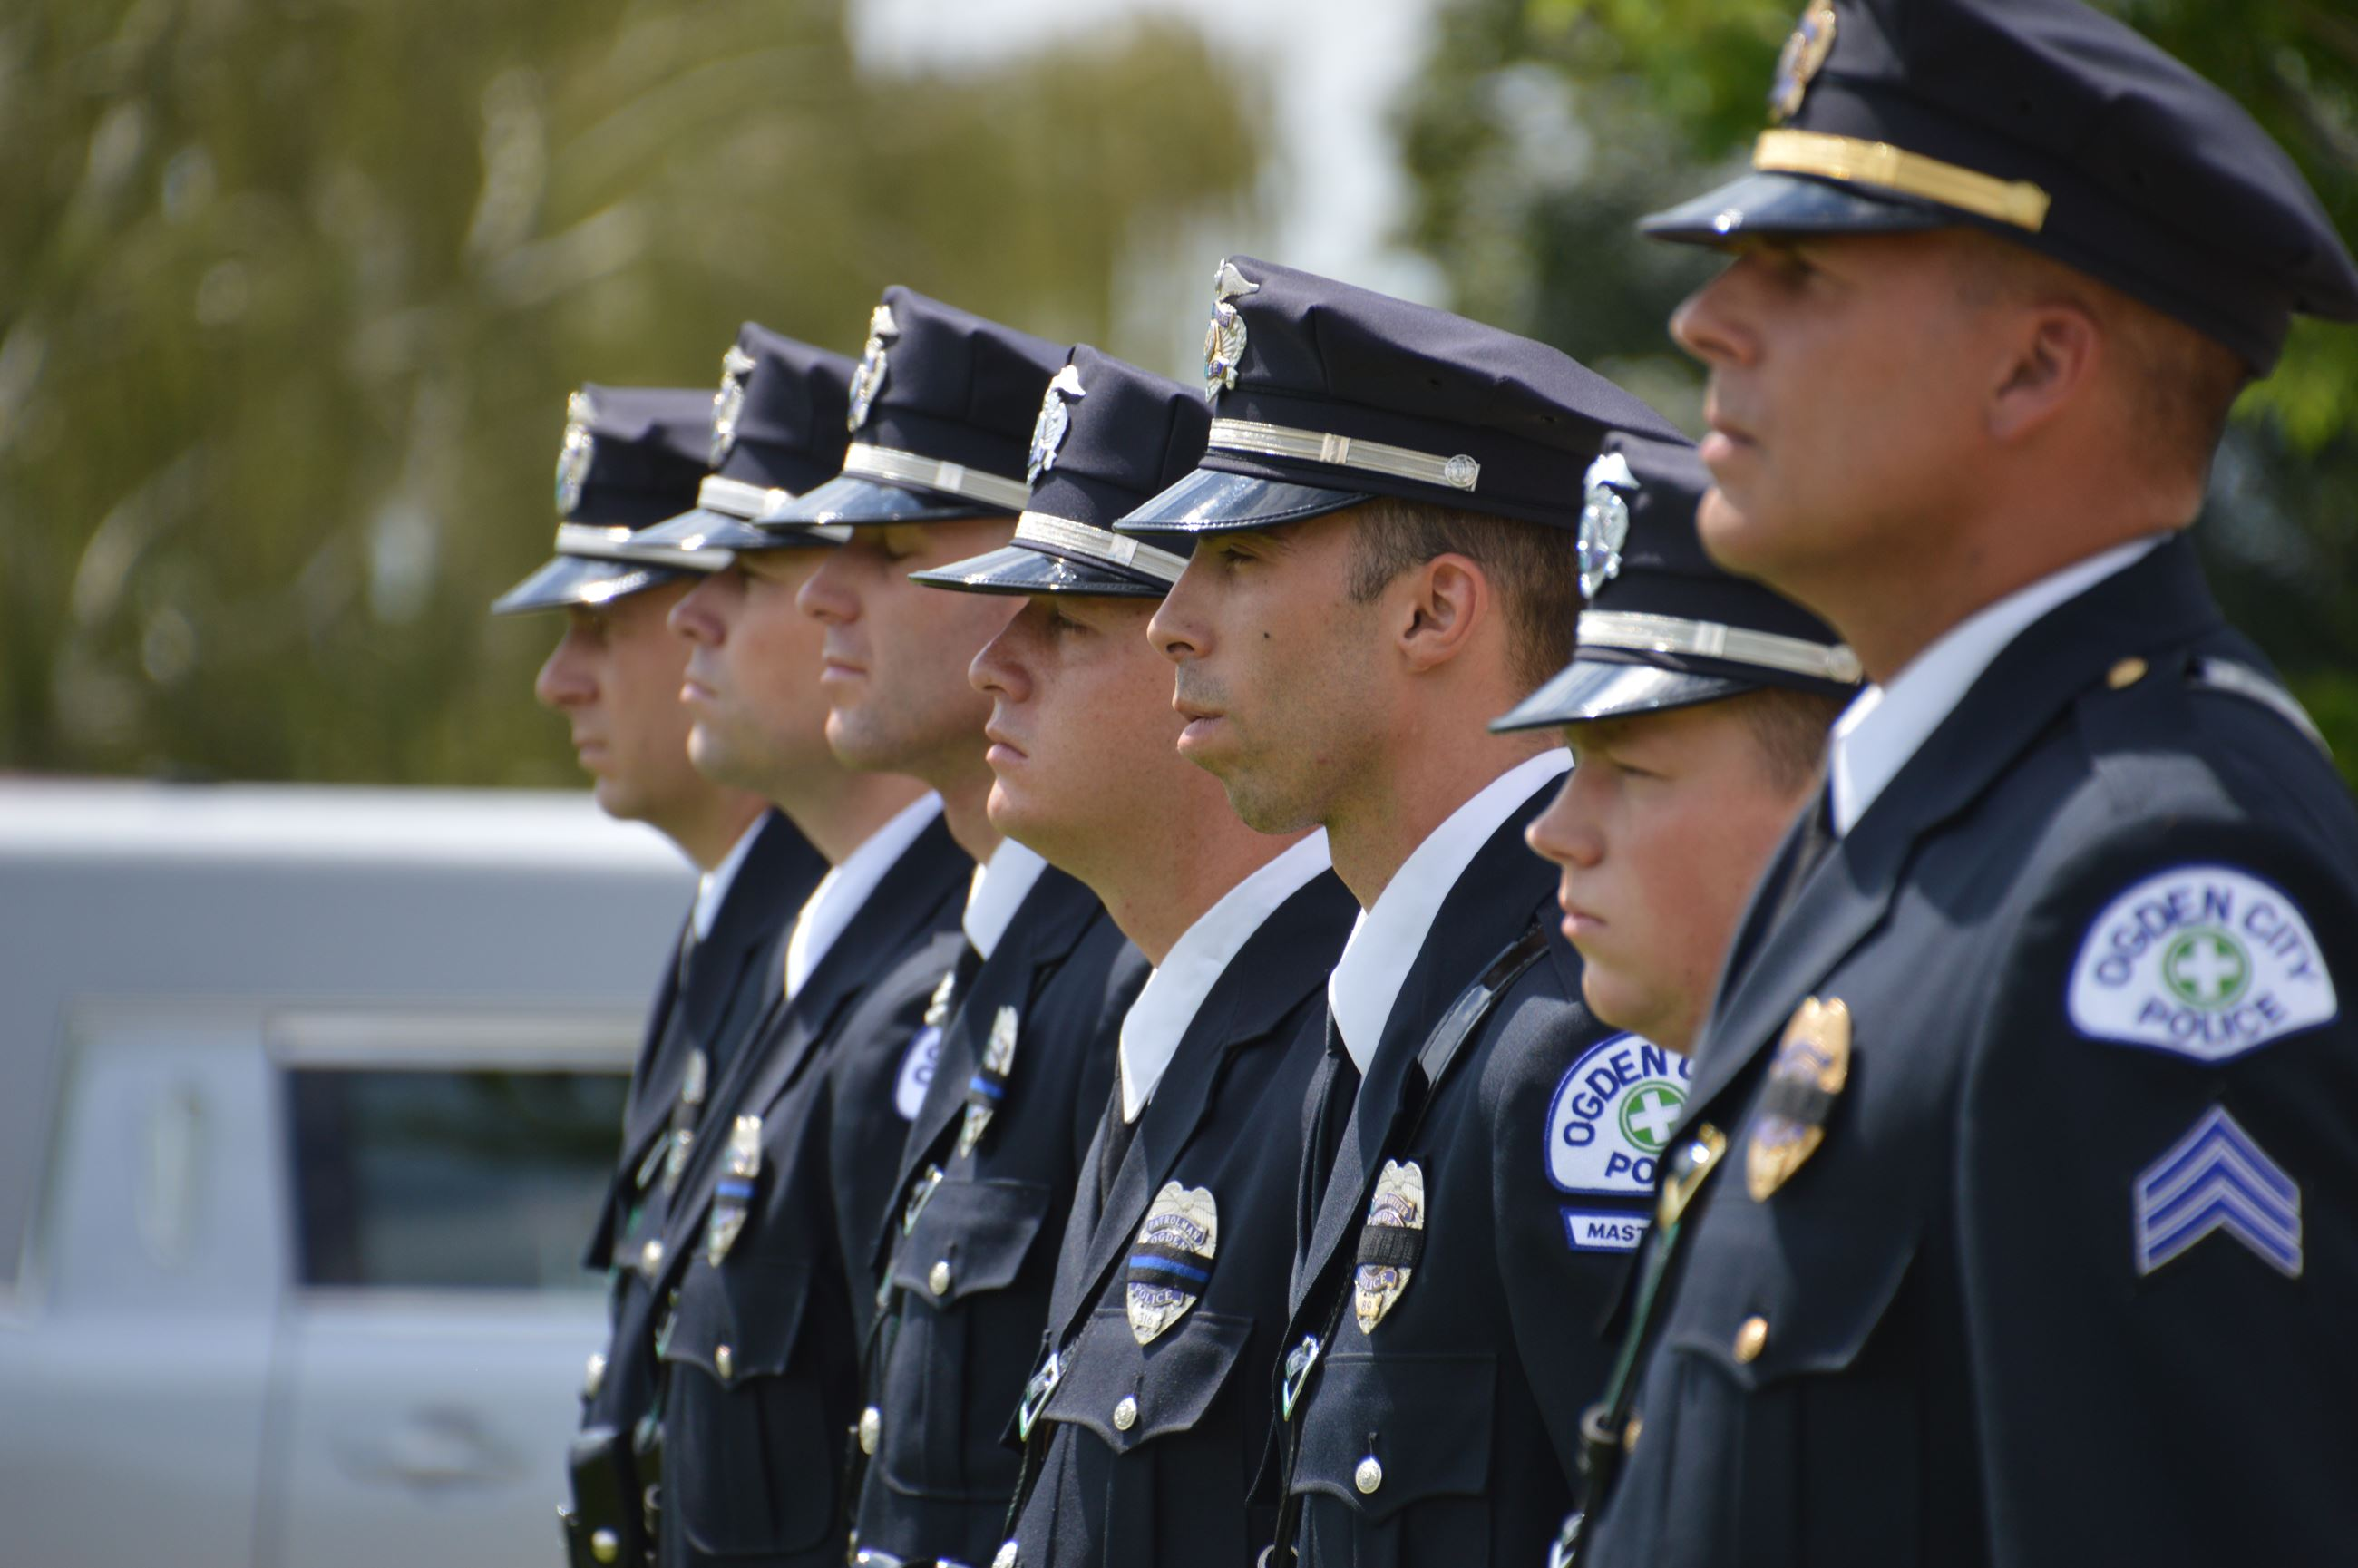 Honoring Our Fellow Officers